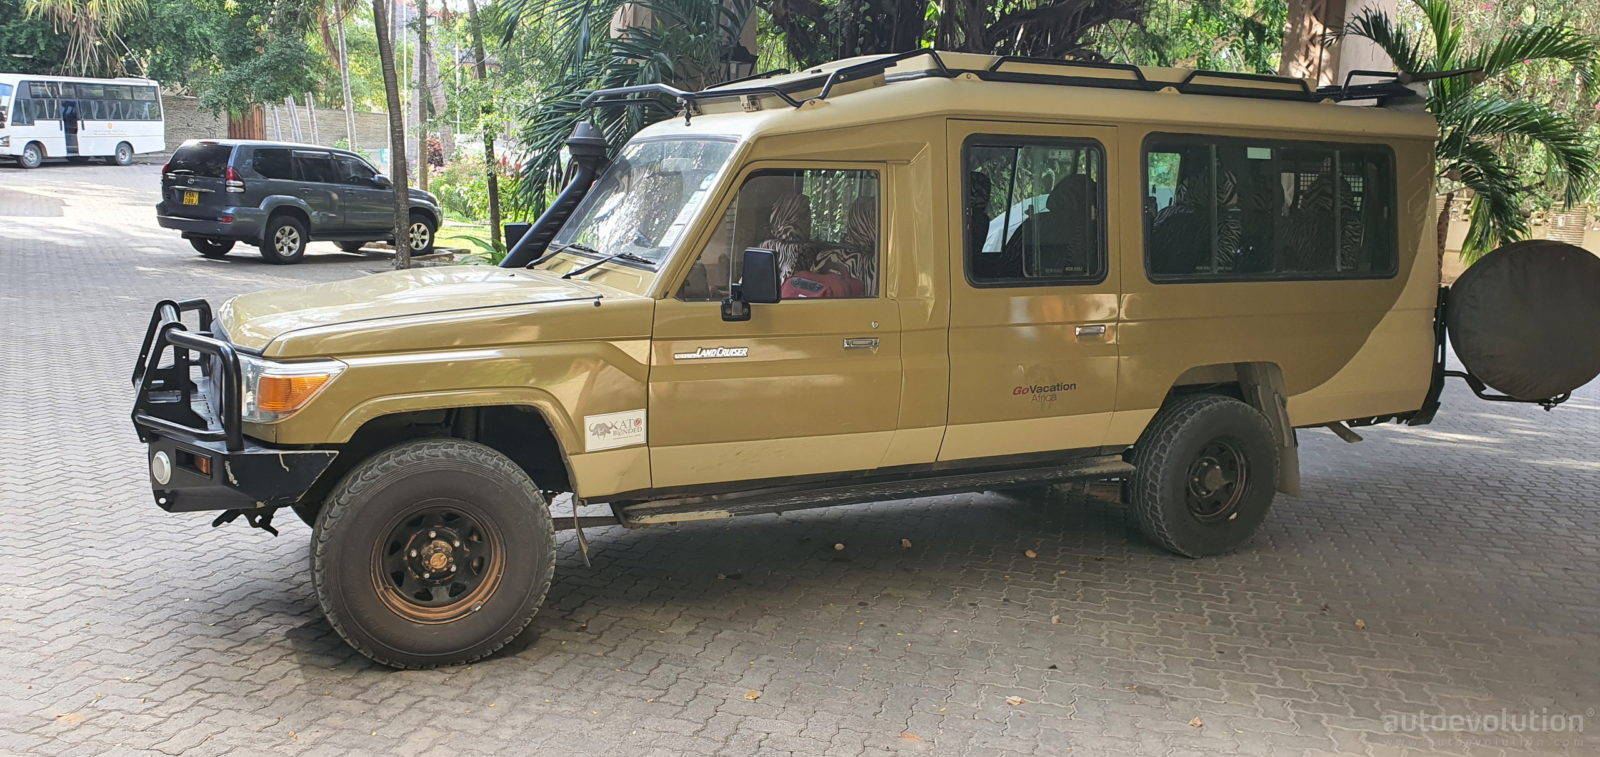 i-had-the-time-of-my-life-driving-a-toyota-land-cruiser-safari-4×4-in-the-african-bush